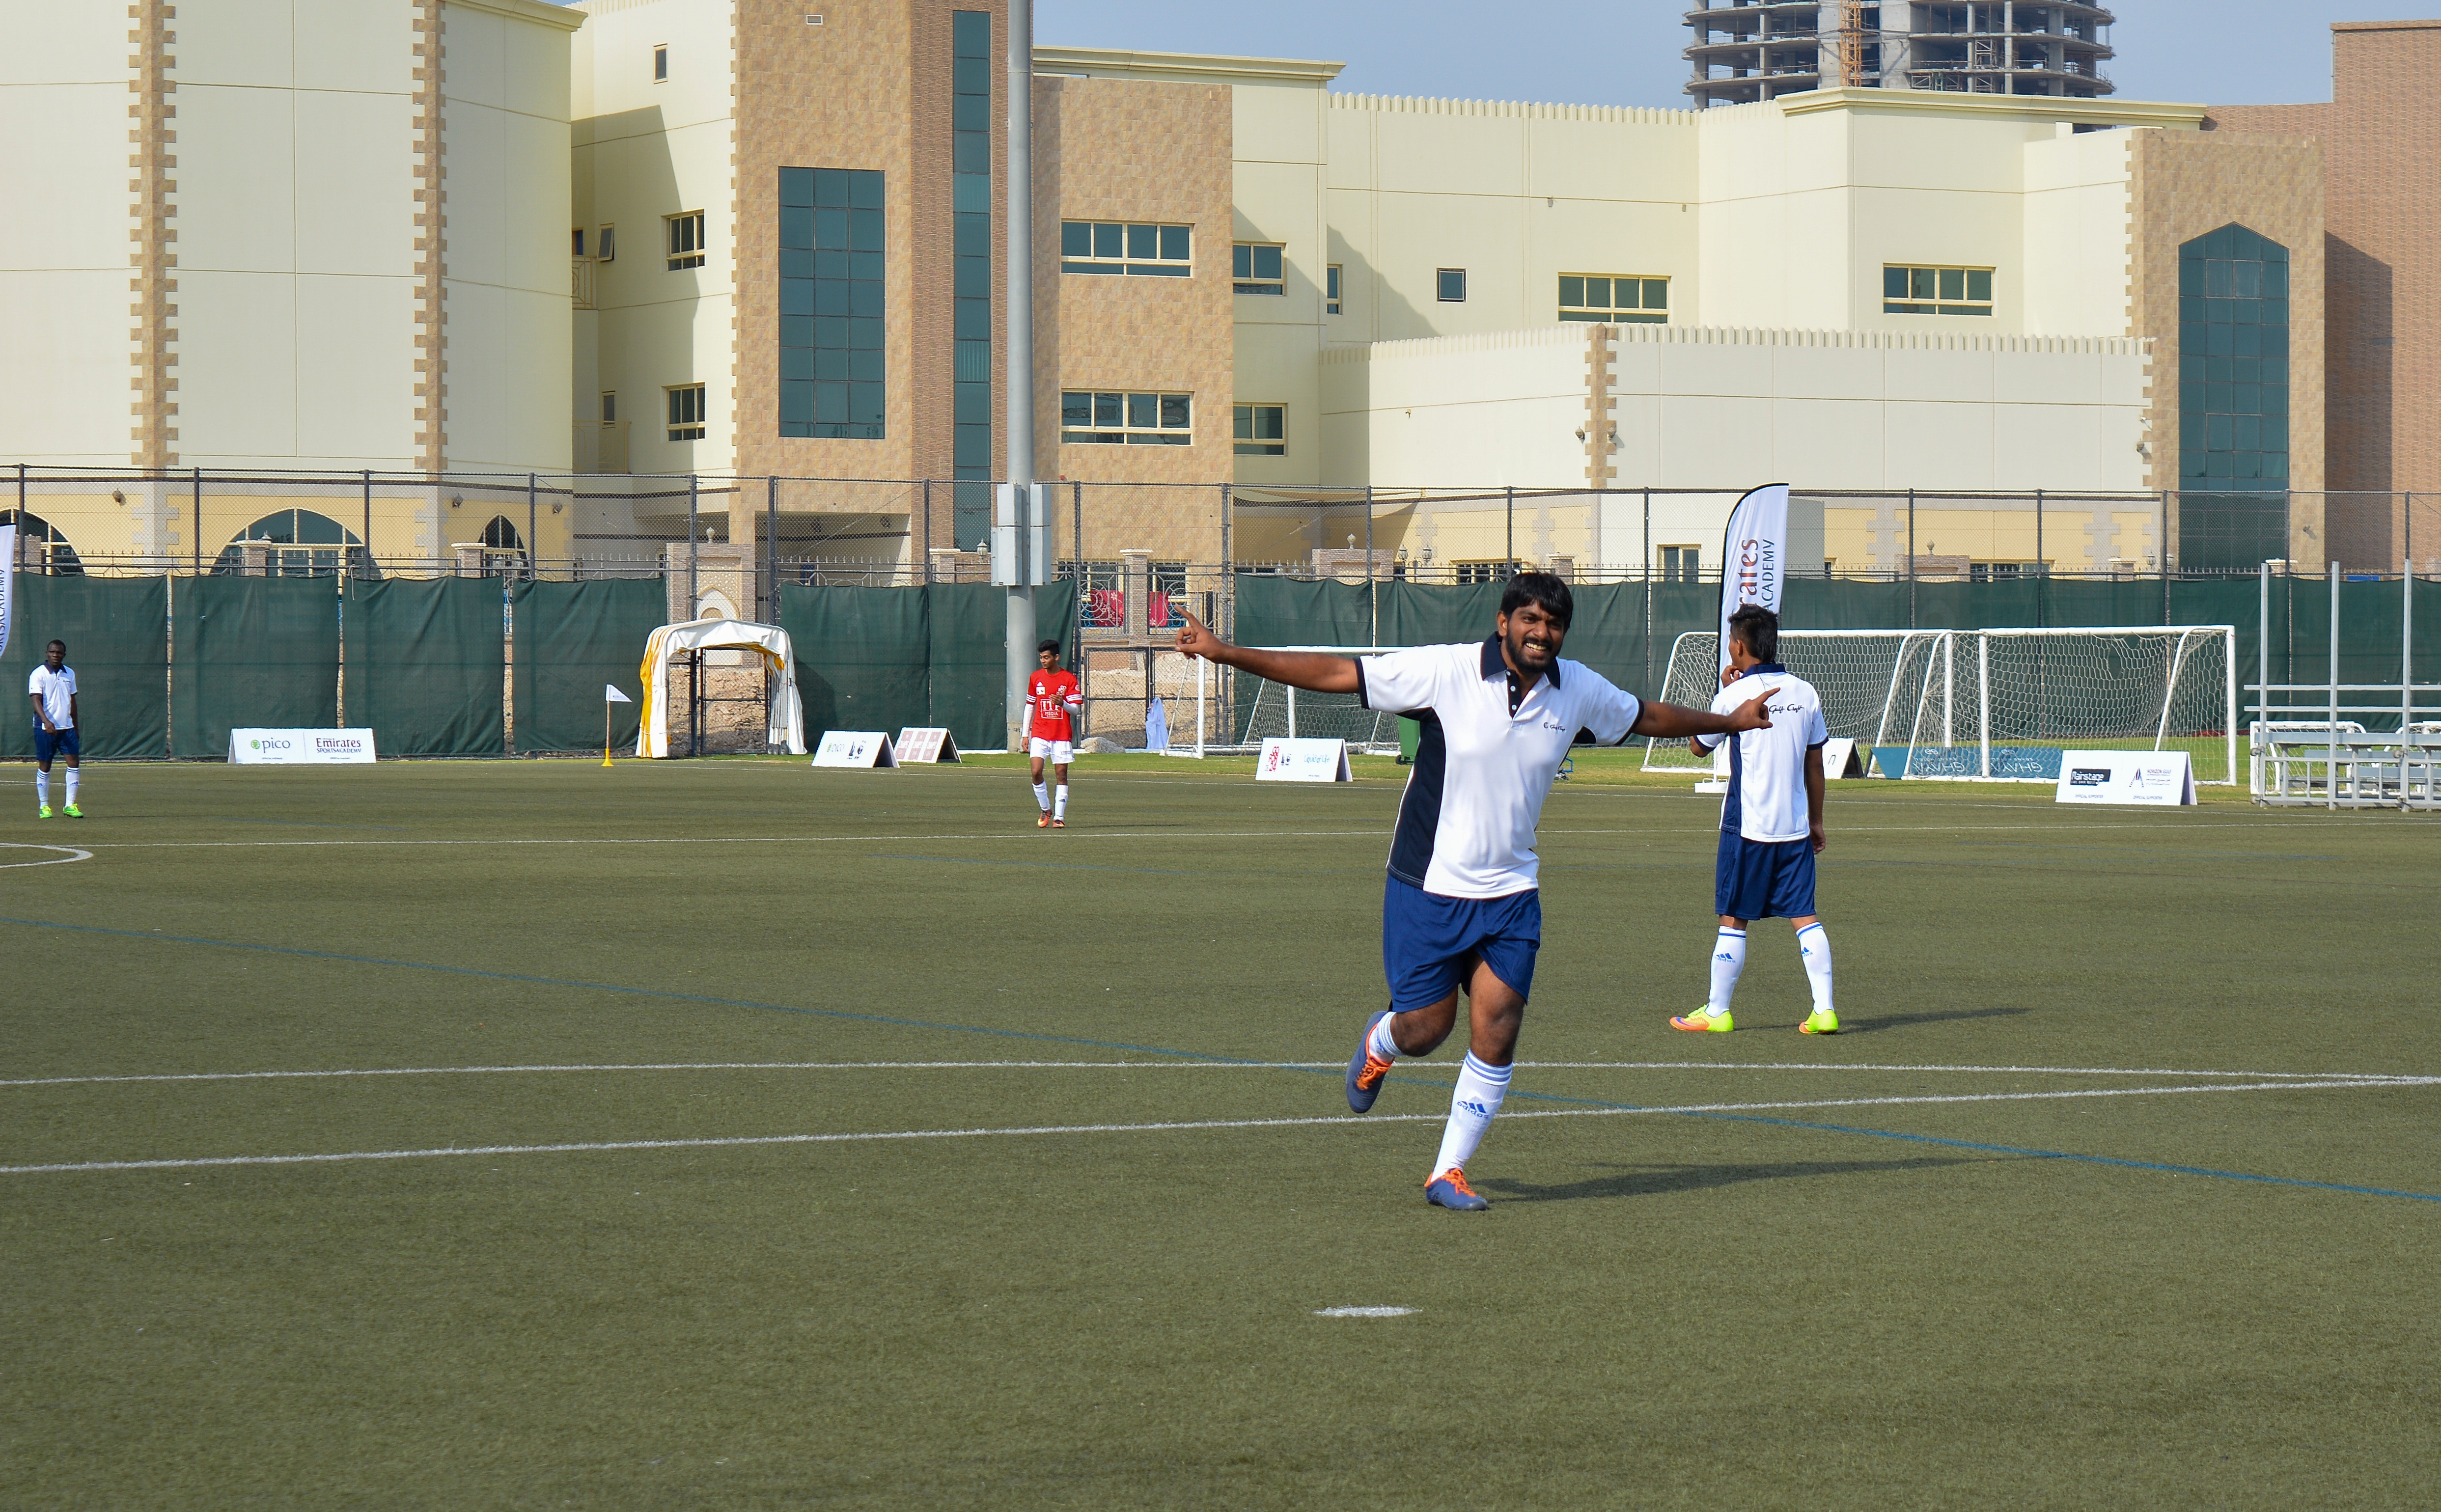 Dance of success after scoring against the Heroes team